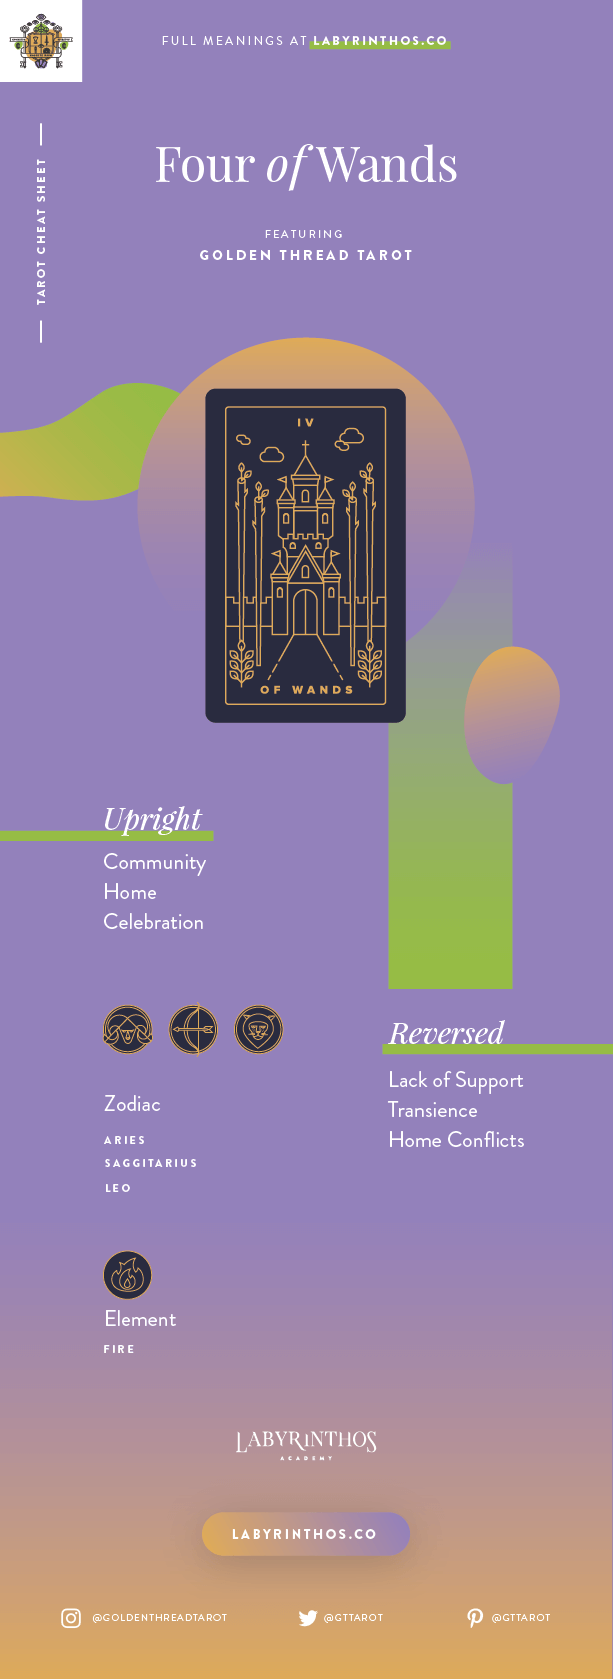 Four of Wands Meaning - Tarot Card Meanings Cheat Sheet